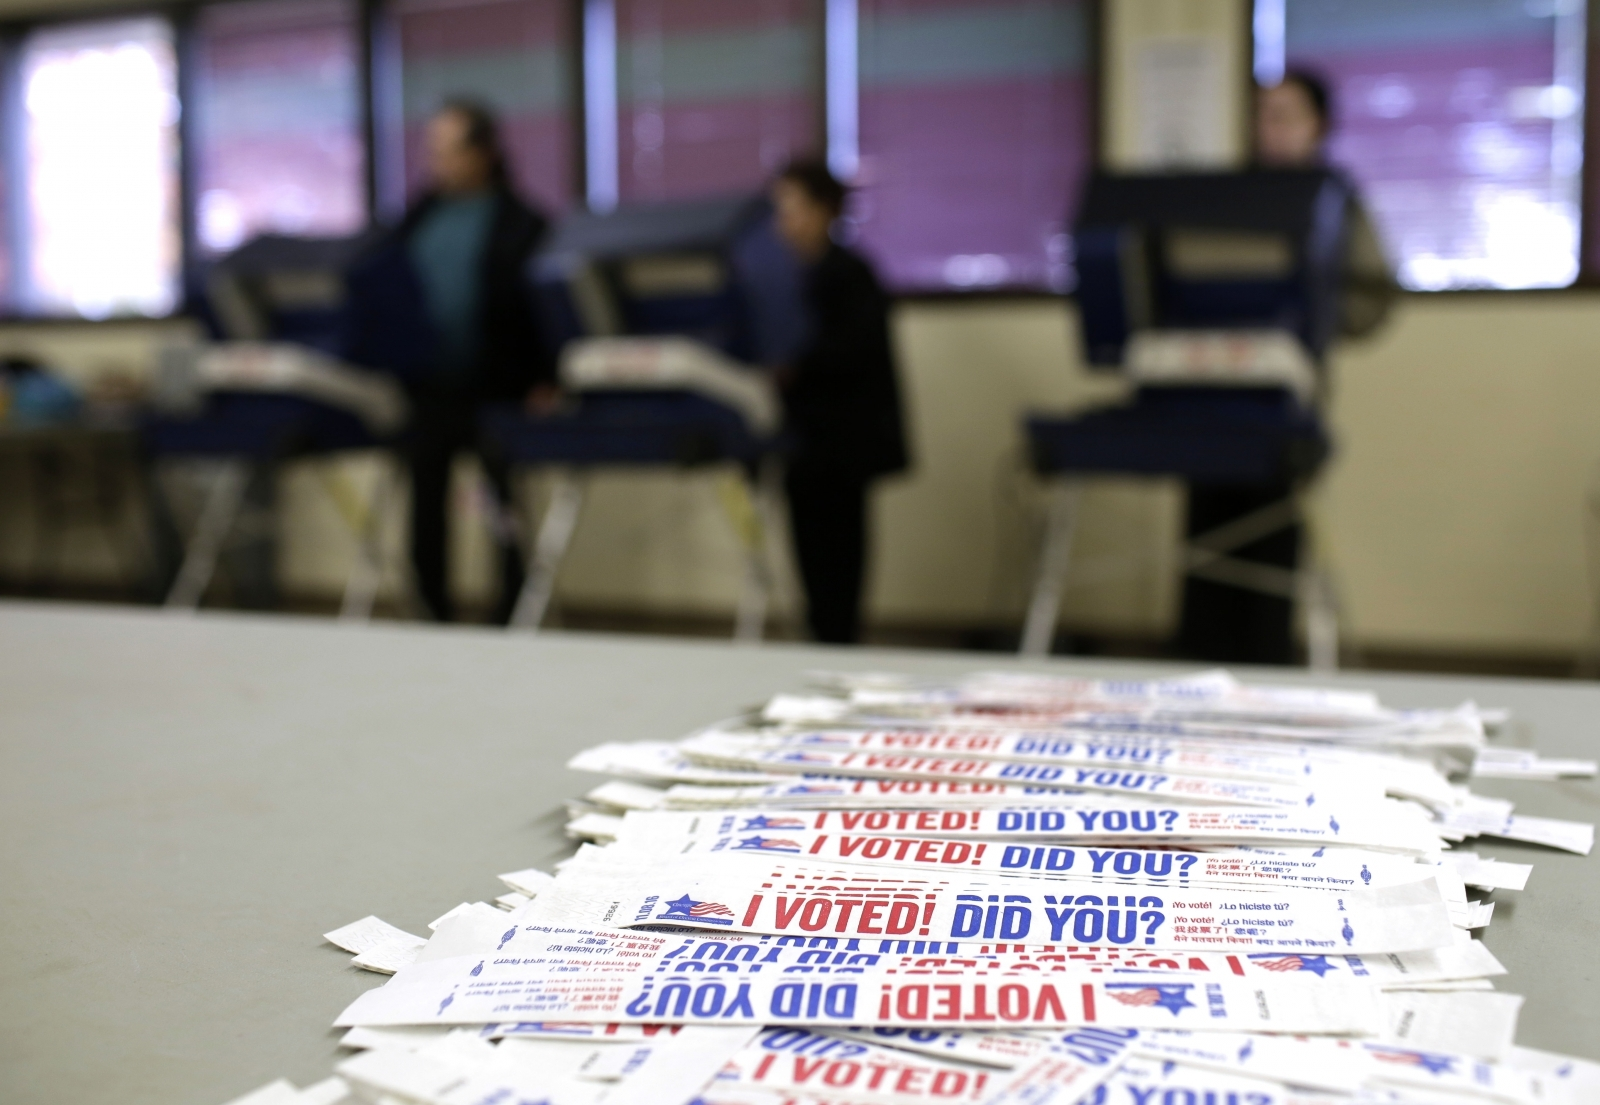 Data on 1.8M Chicago voters exposed